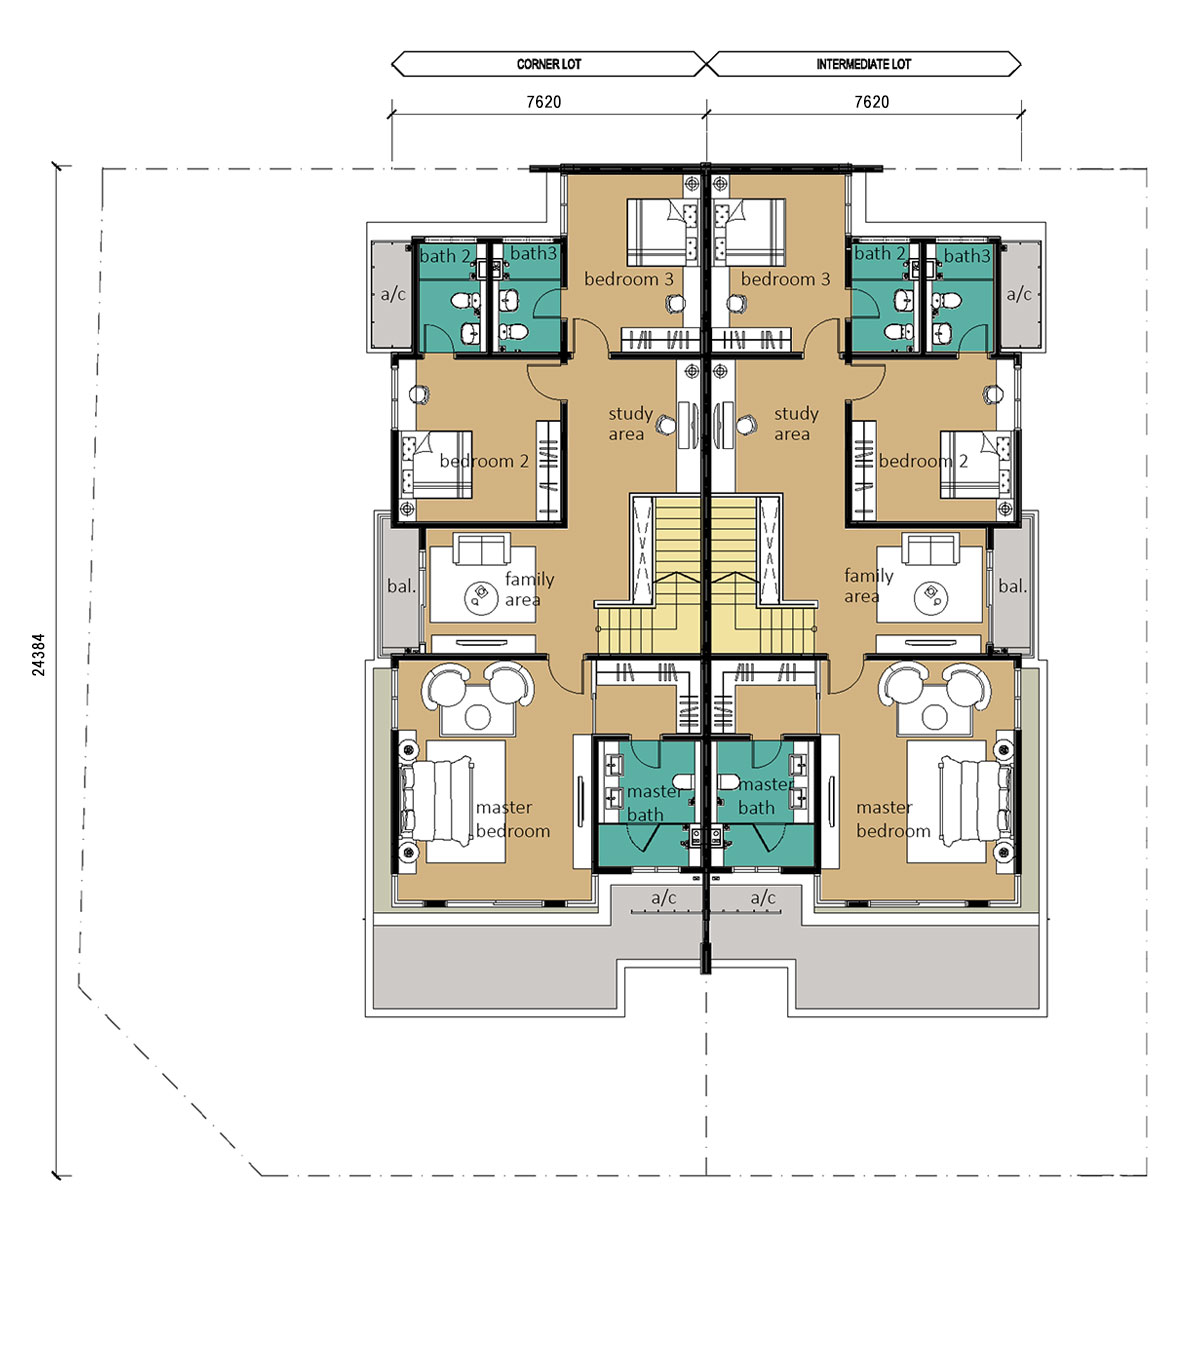 2 Storey - Cluster - Type C - First Floor